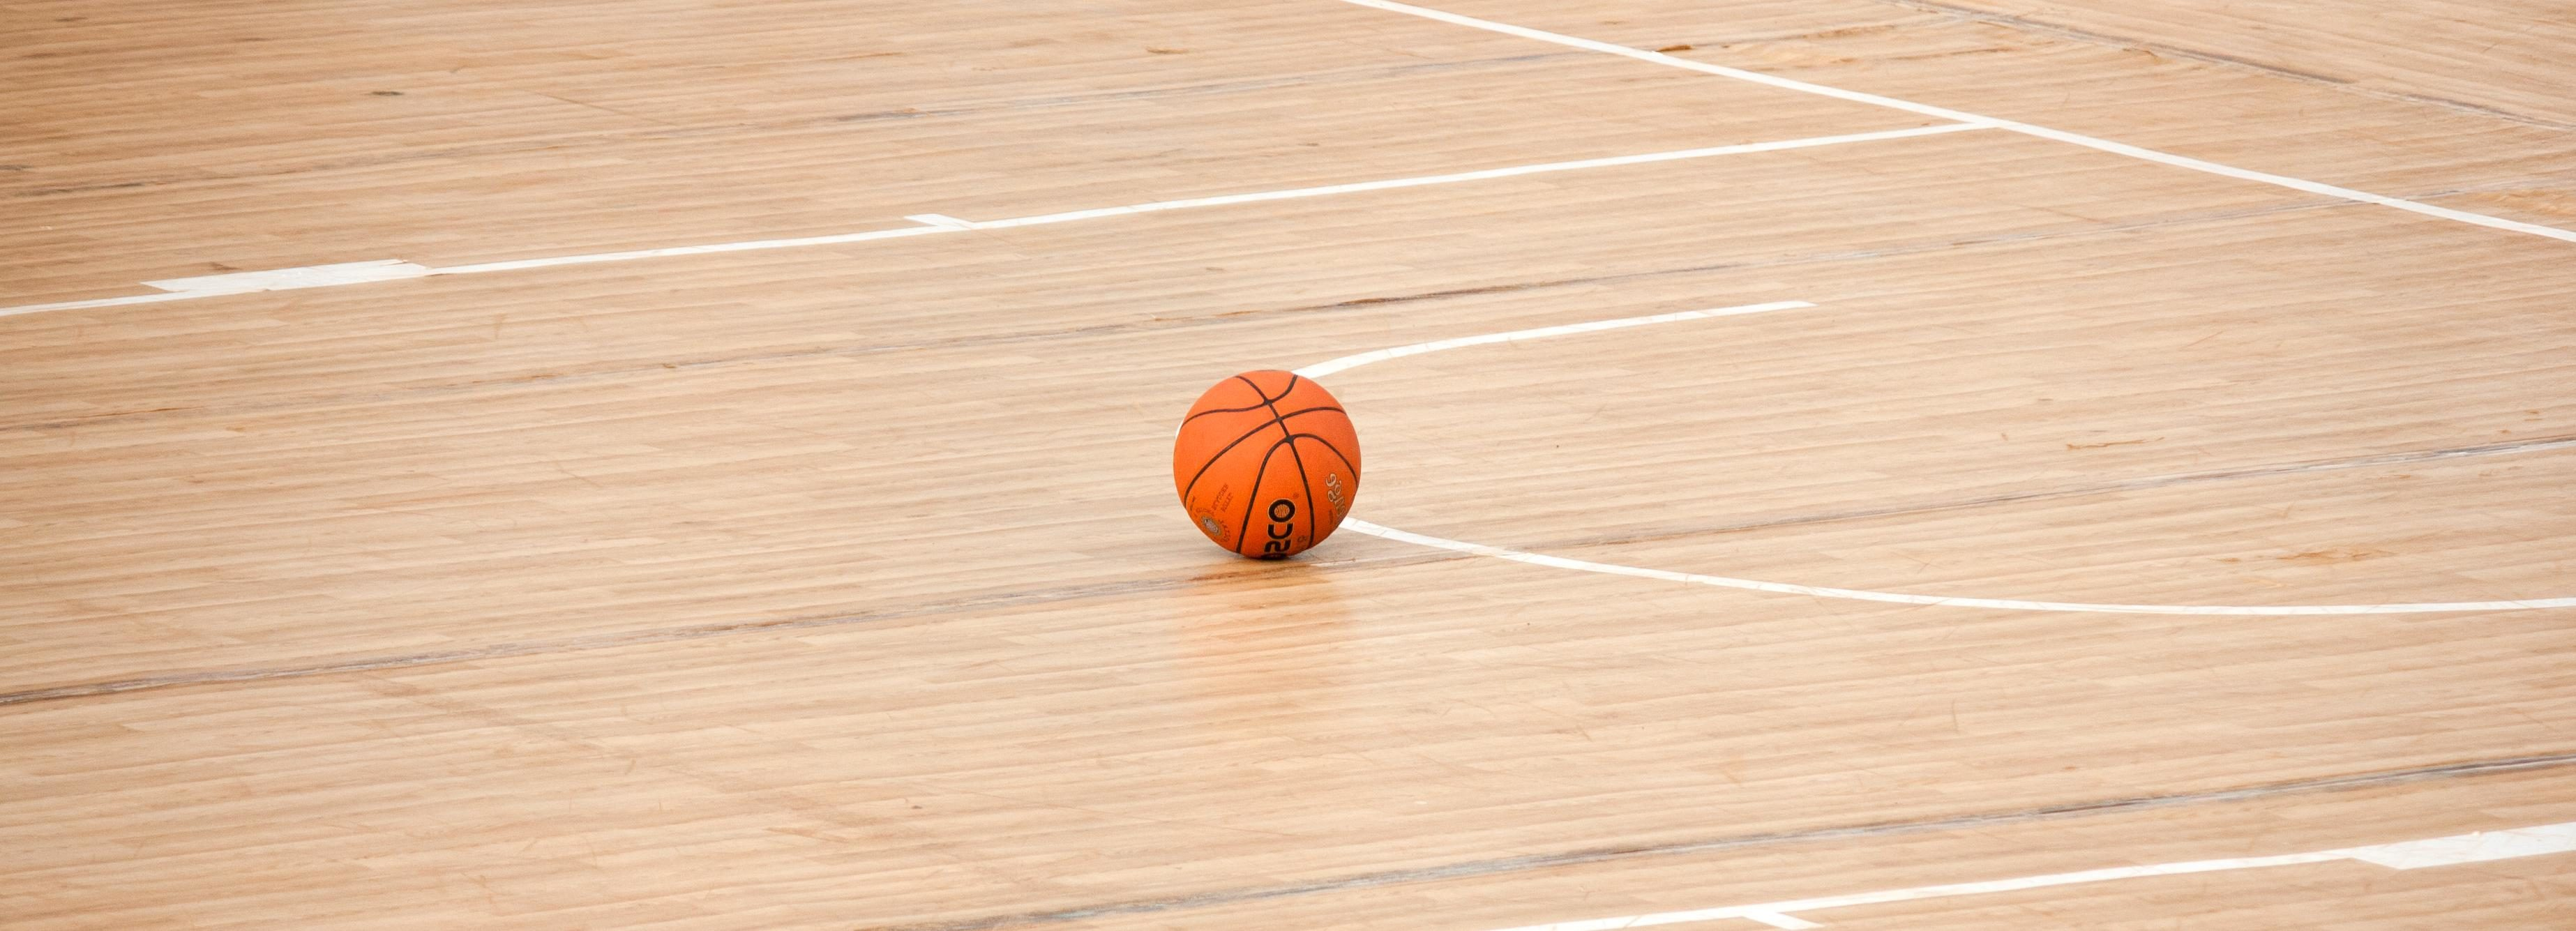 photo floor stock depositphotos viewed hardwood court floors basketball maple